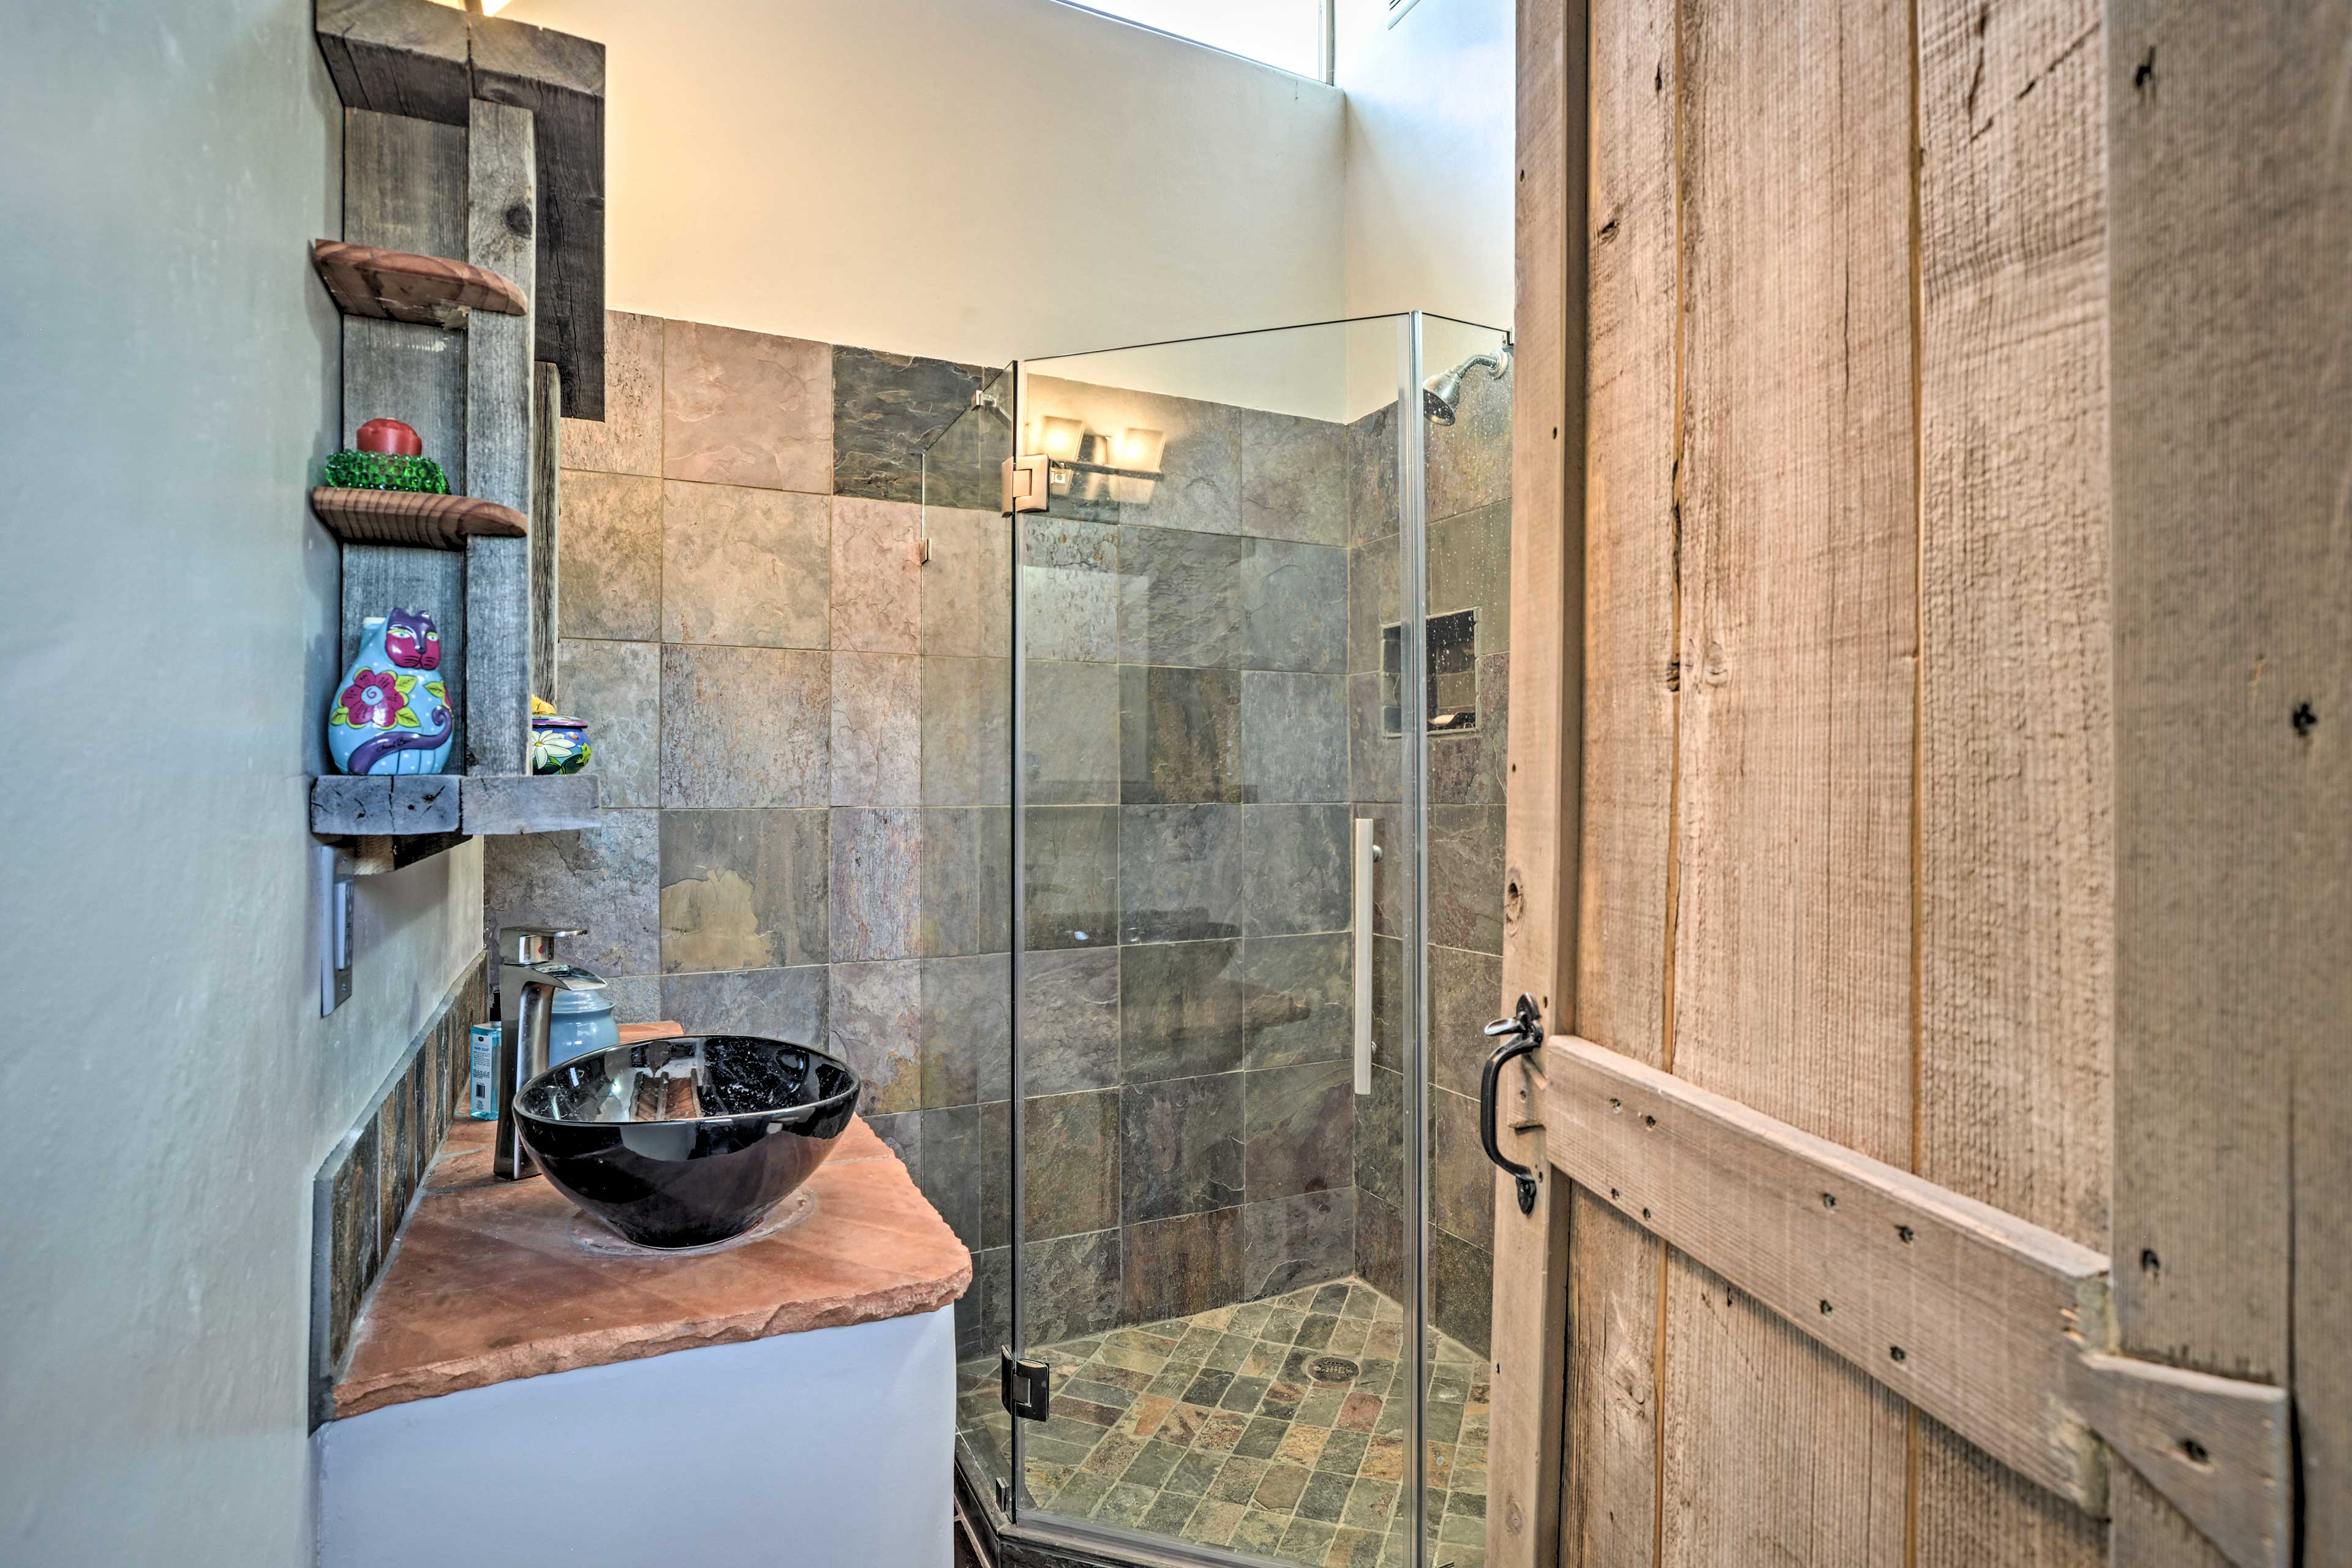 The second full bathroom features another walk-in shower.